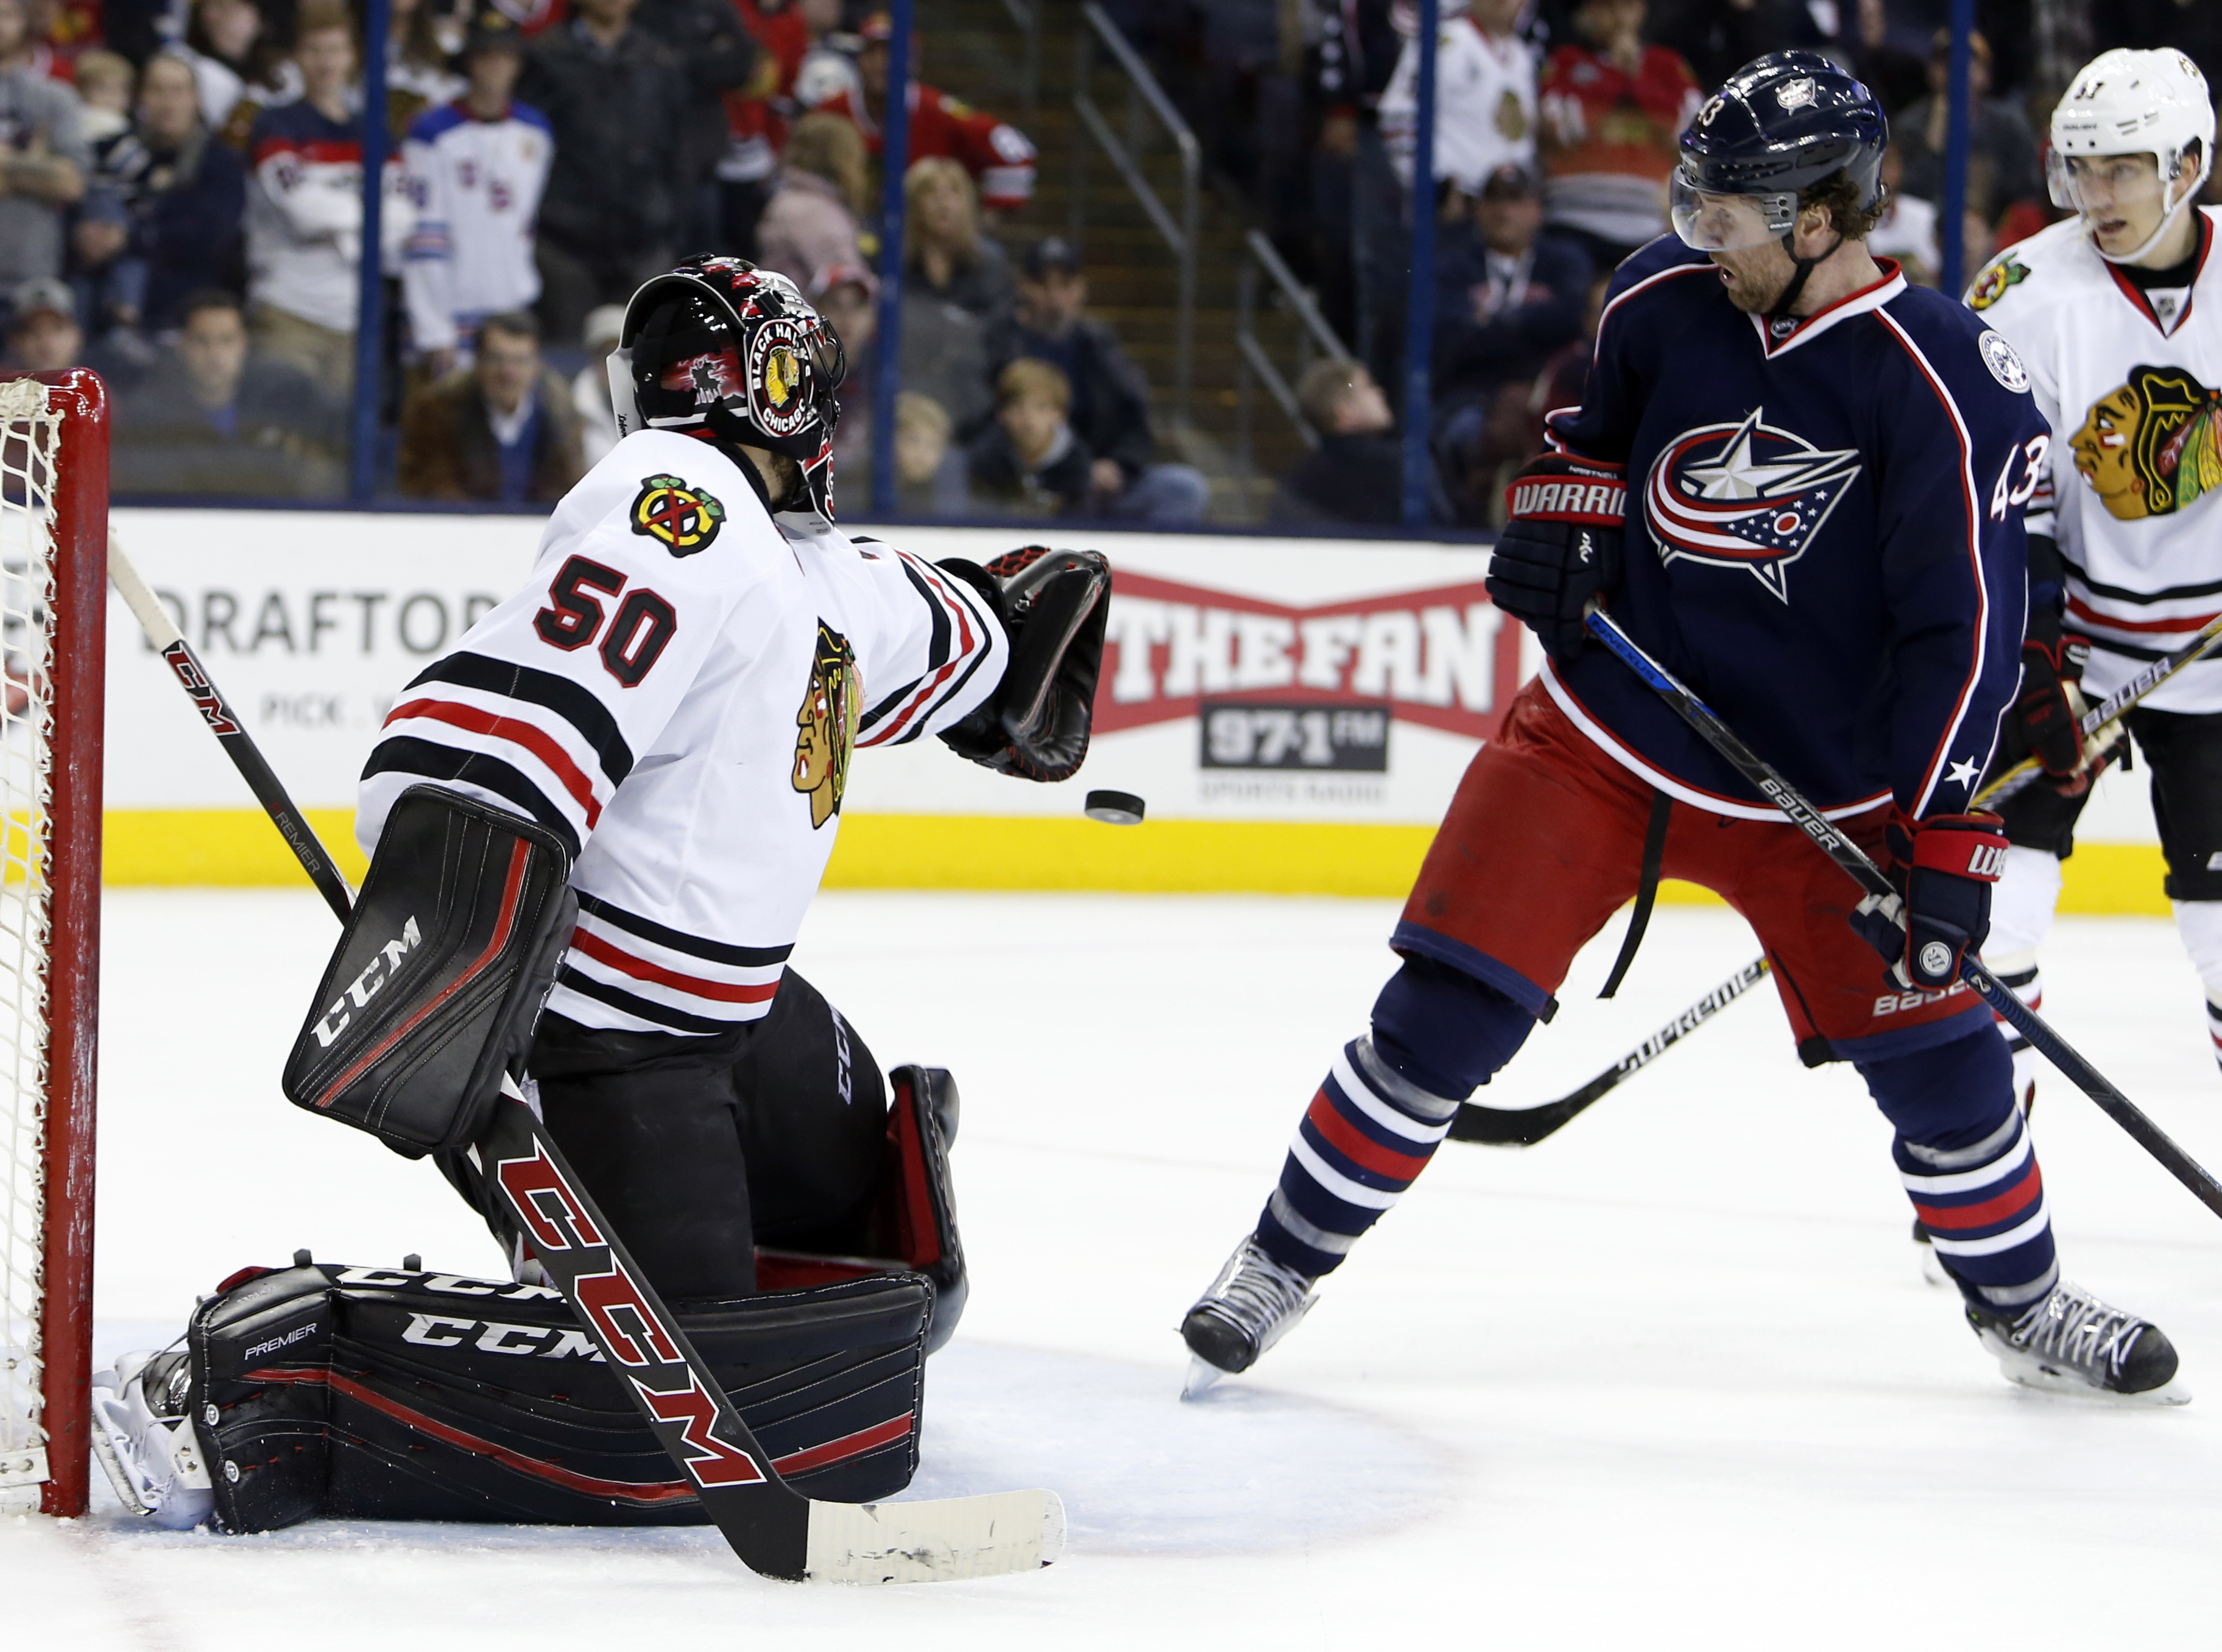 Columbus Blue Jackets' Scott Hartnell, right, deflects the puck into the goal against Chicago Blackhawks' Corey Crawford during the overtime period of an NHL hockey game Saturday, April 9, 2016, in Columbus, Ohio. The Blue Jackets beat the Blackhawks 5-4